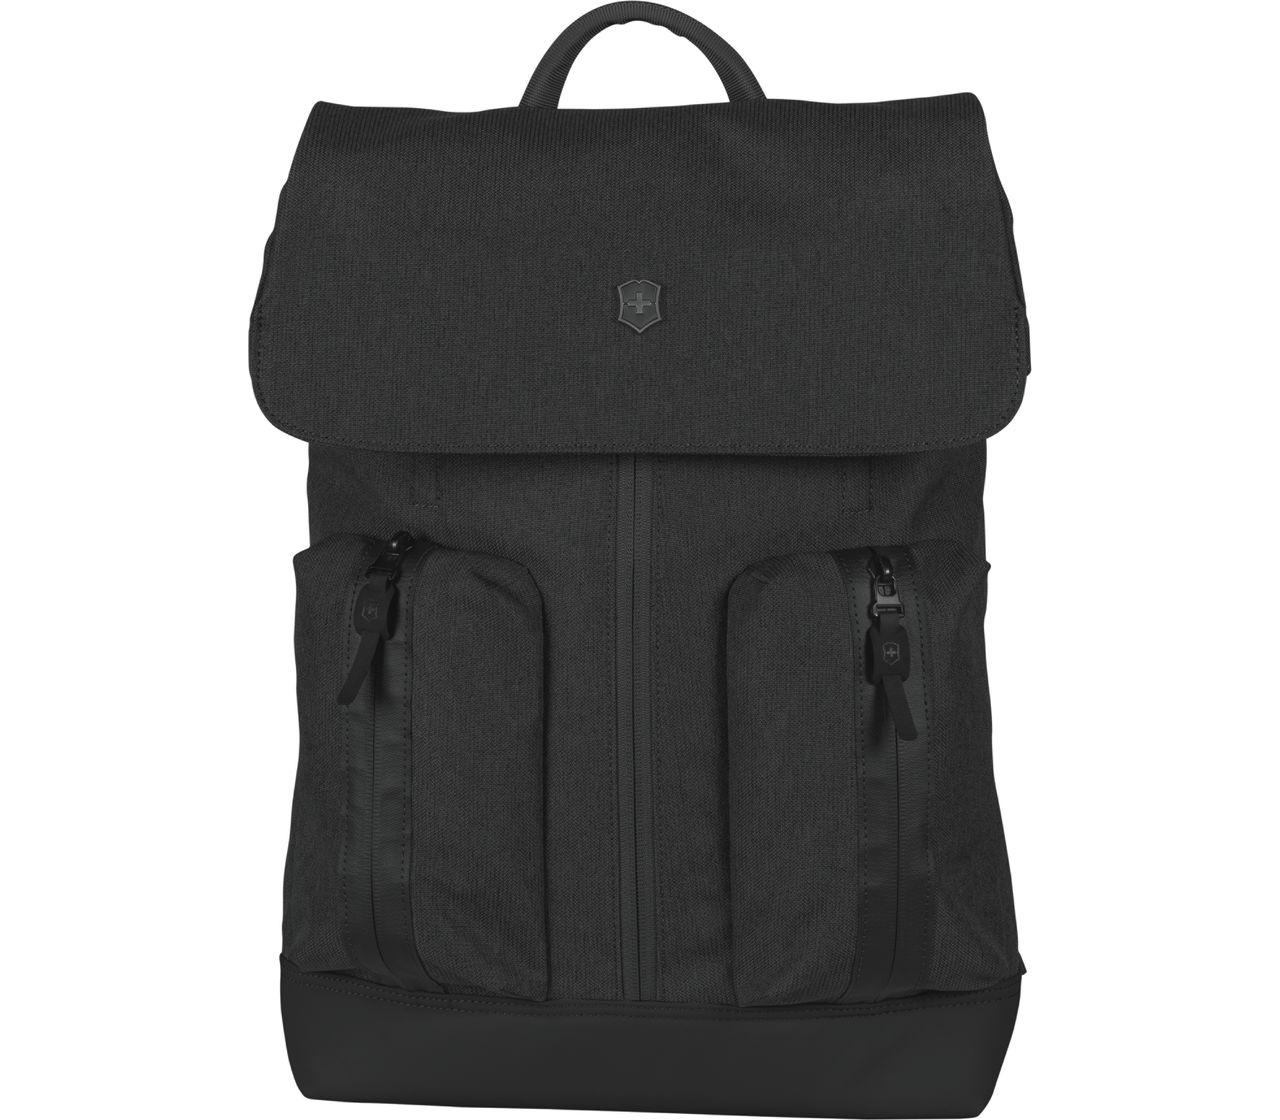 Flapover Laptop Backpack-602642